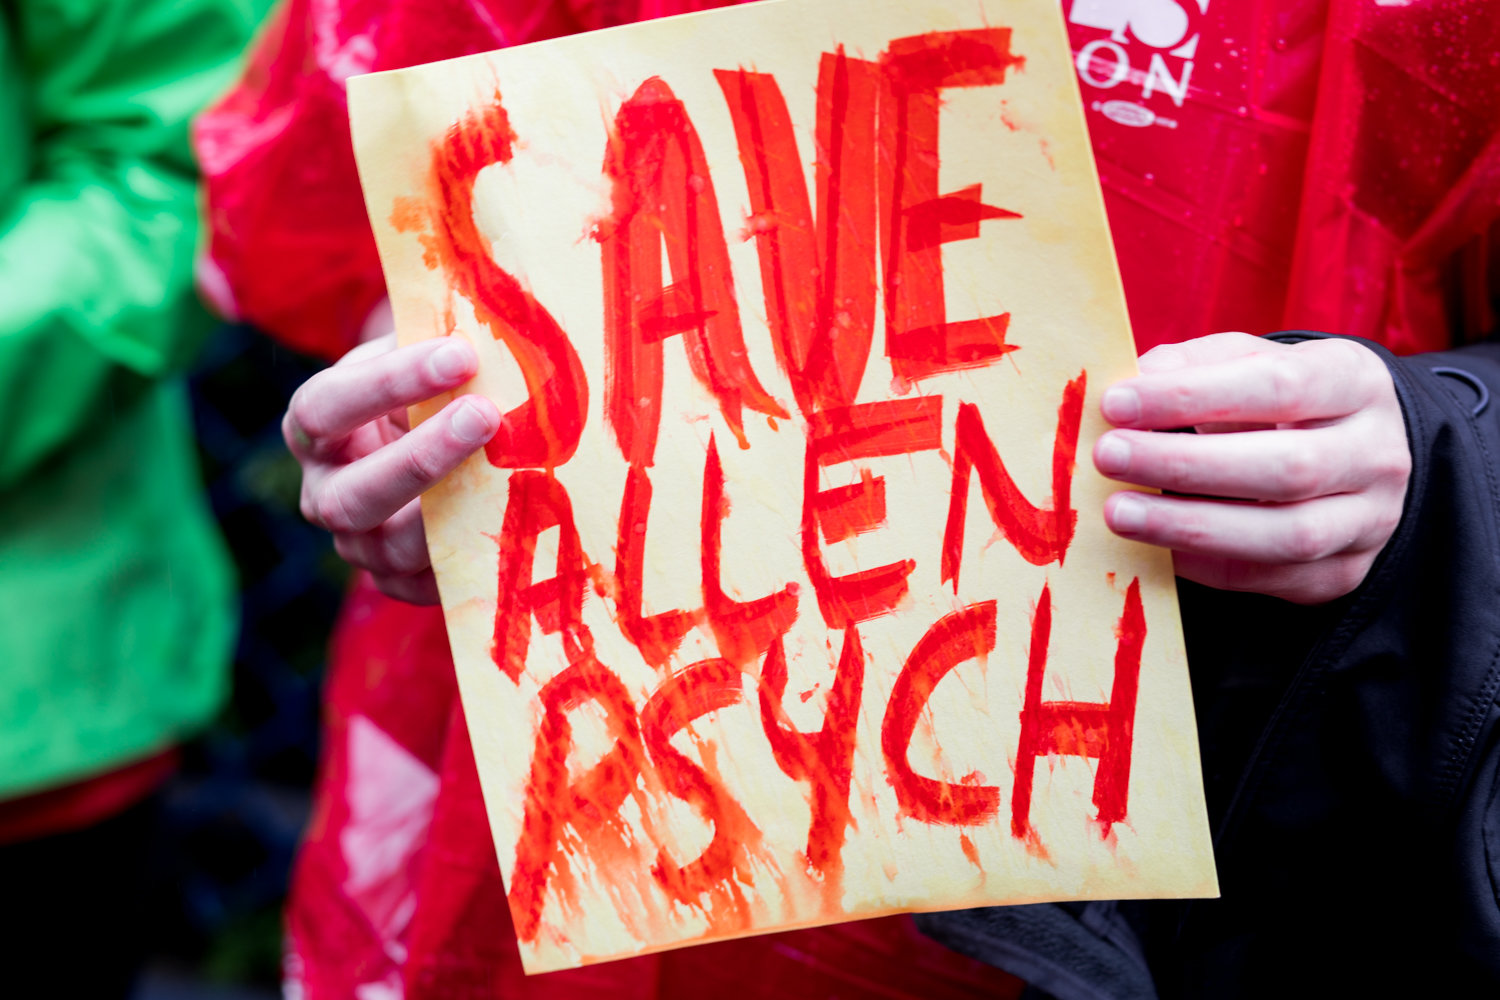 A protester holds a sign that reads 'Save Allen psych' at a rally last year against NewYork-Presbyterian's plan to decertify 30 beds in Allen Hospital's psychiatric unit. Advocates are still fighting to save the unit.